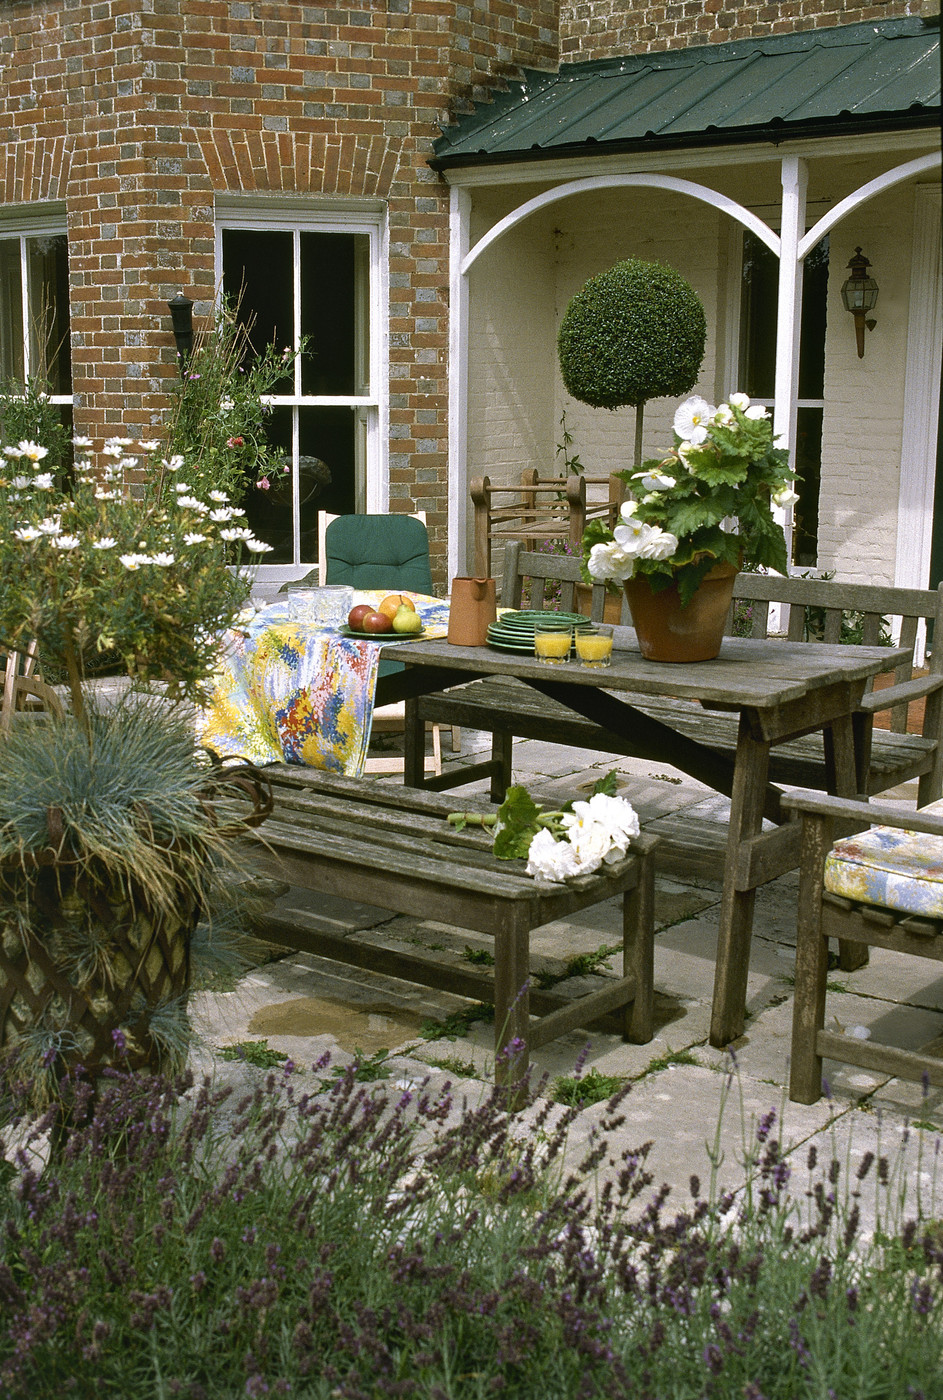 Country patio outdoor patio design ideas lonny for Garden patio design ideas